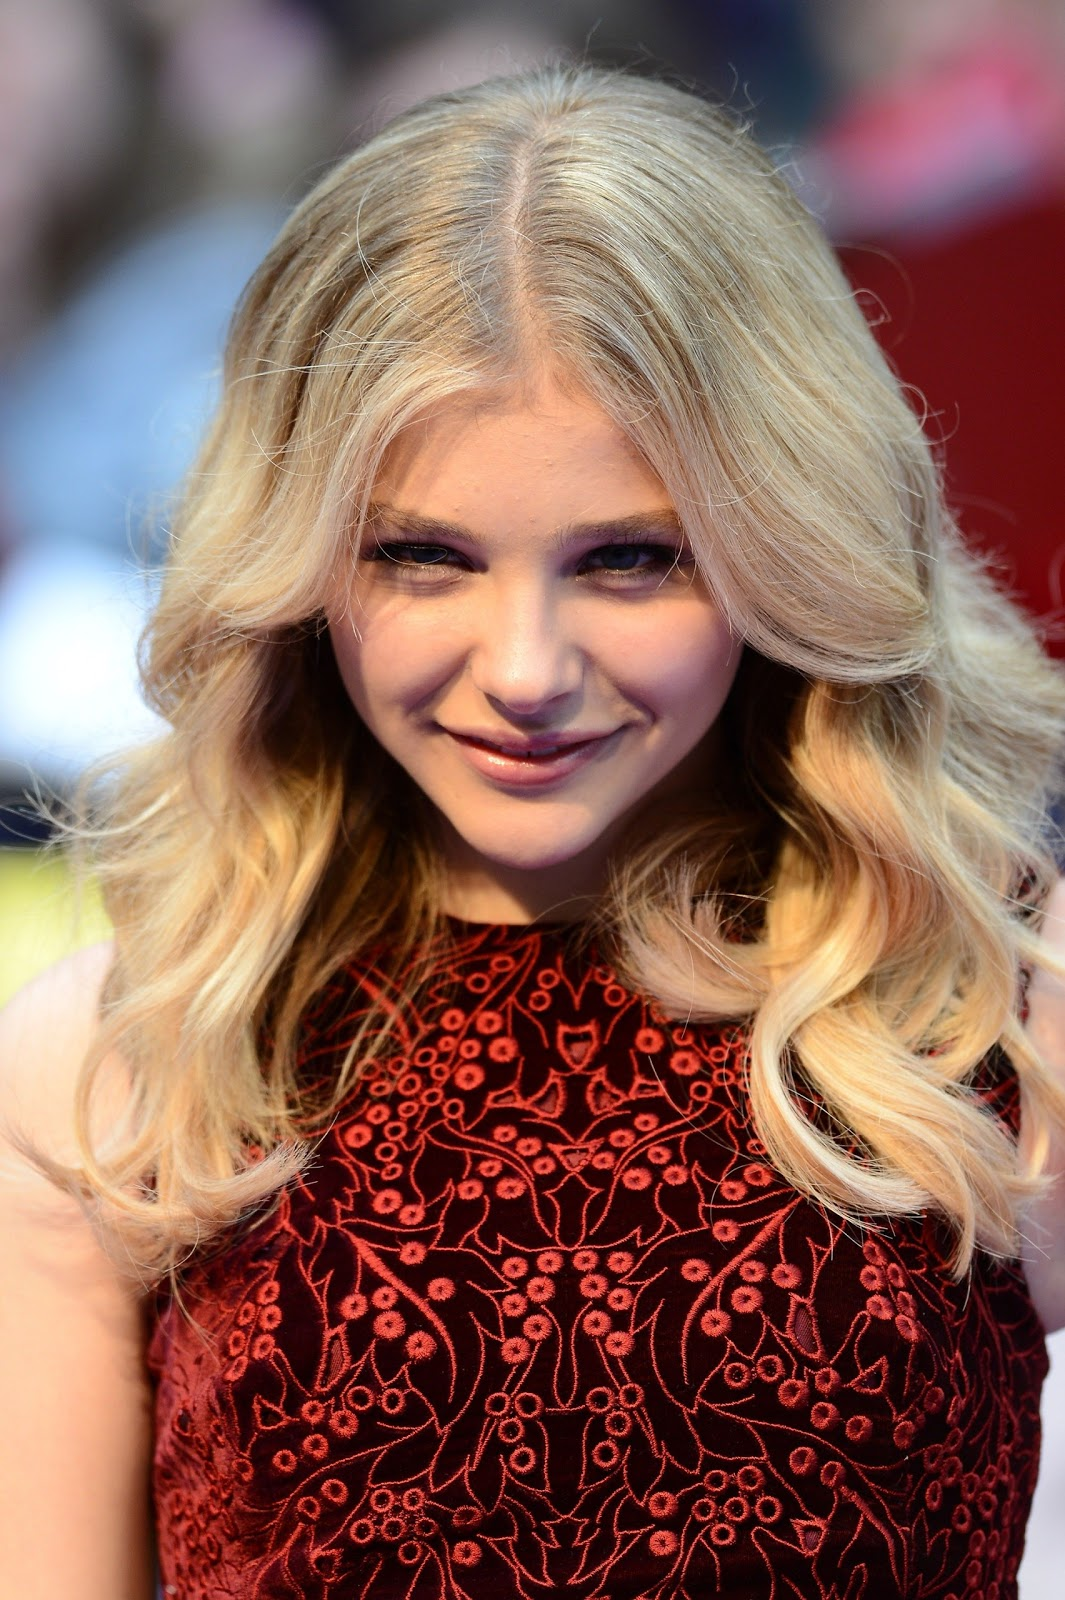 Chloe Grace Moretz pic... Abbie Cornish